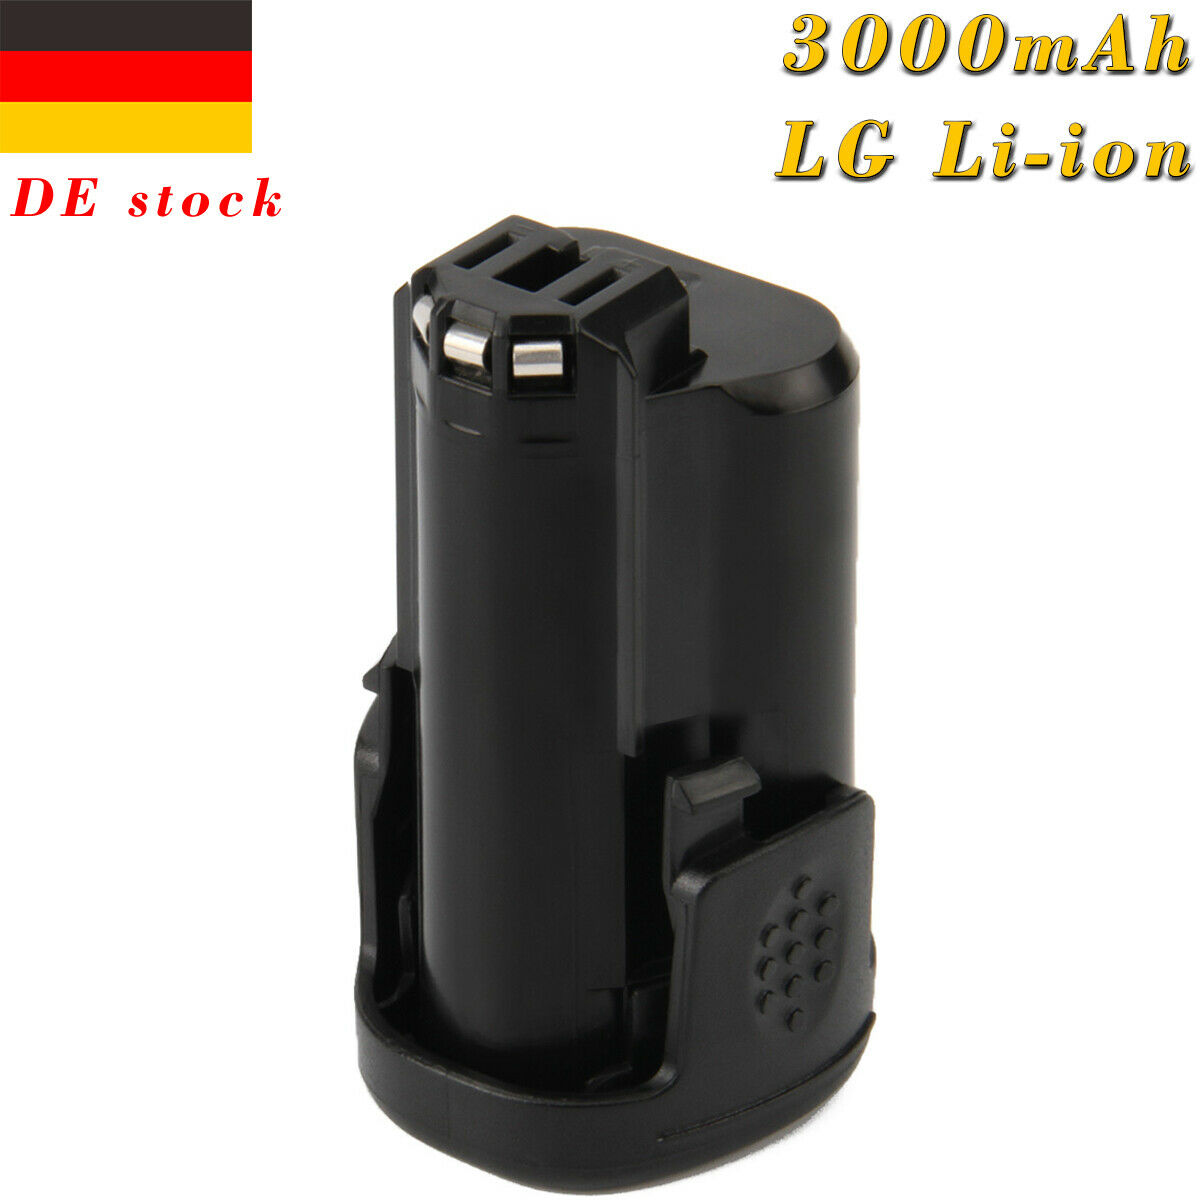 12v 3000mah li ionen akku f r dremel b812 01 b812 02 b812. Black Bedroom Furniture Sets. Home Design Ideas